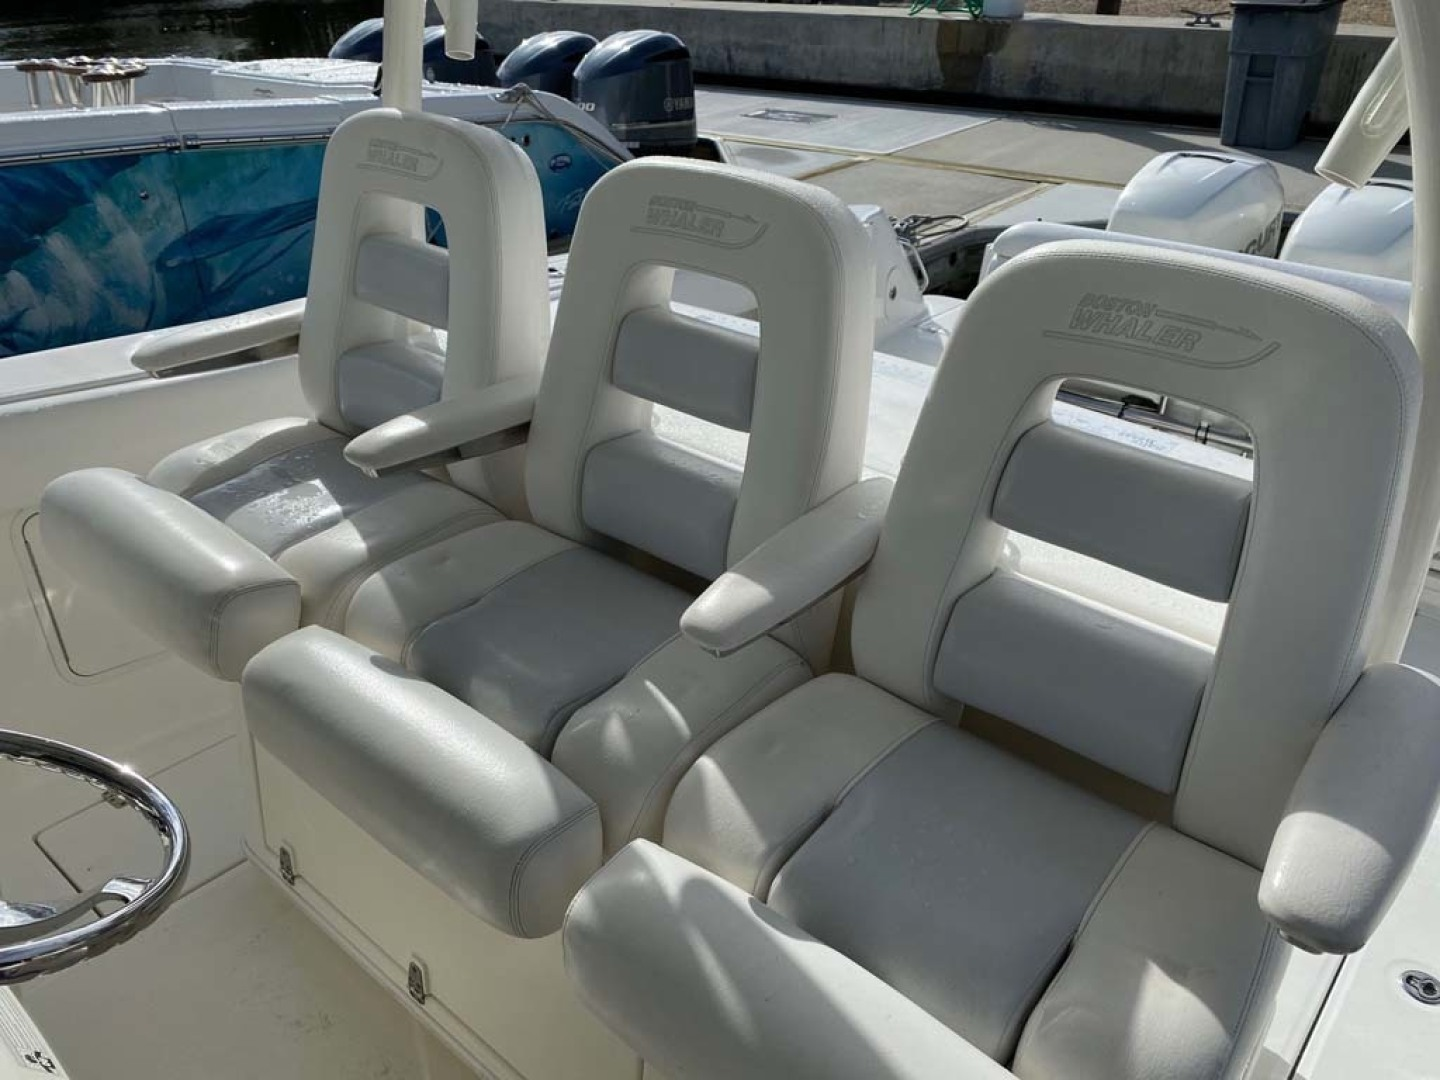 Boston Whaler-370 Outrage 2015-Reel Equity Fort Lauderdale-Florida-United States-Helm Seating-1302003 | Thumbnail